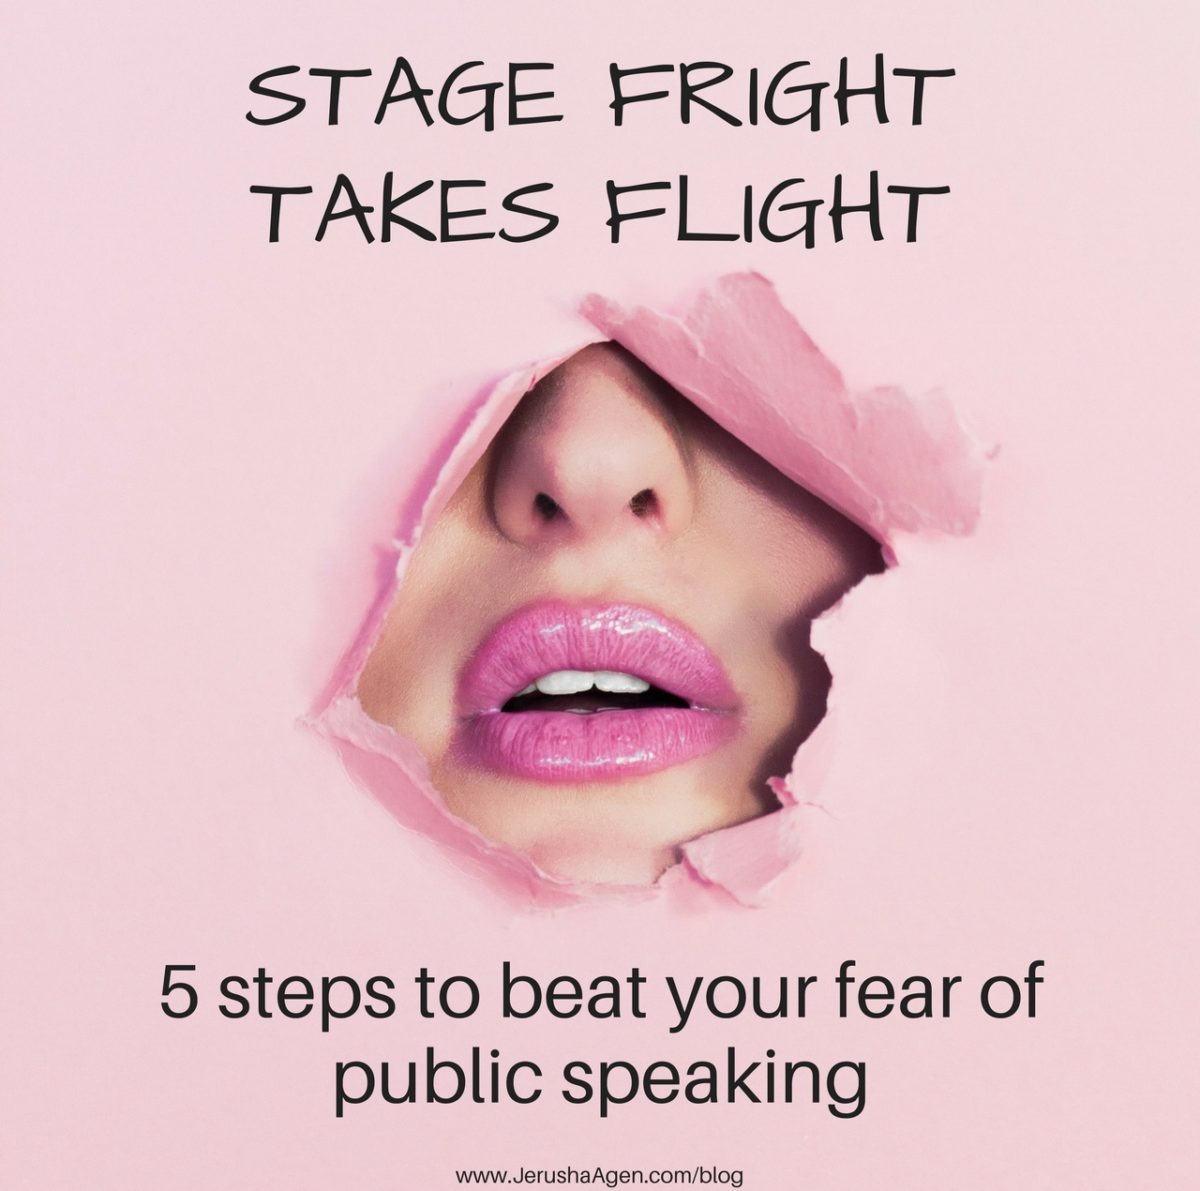 Stage-fright-takes-flight-blog-title-graphic (1280x1270)